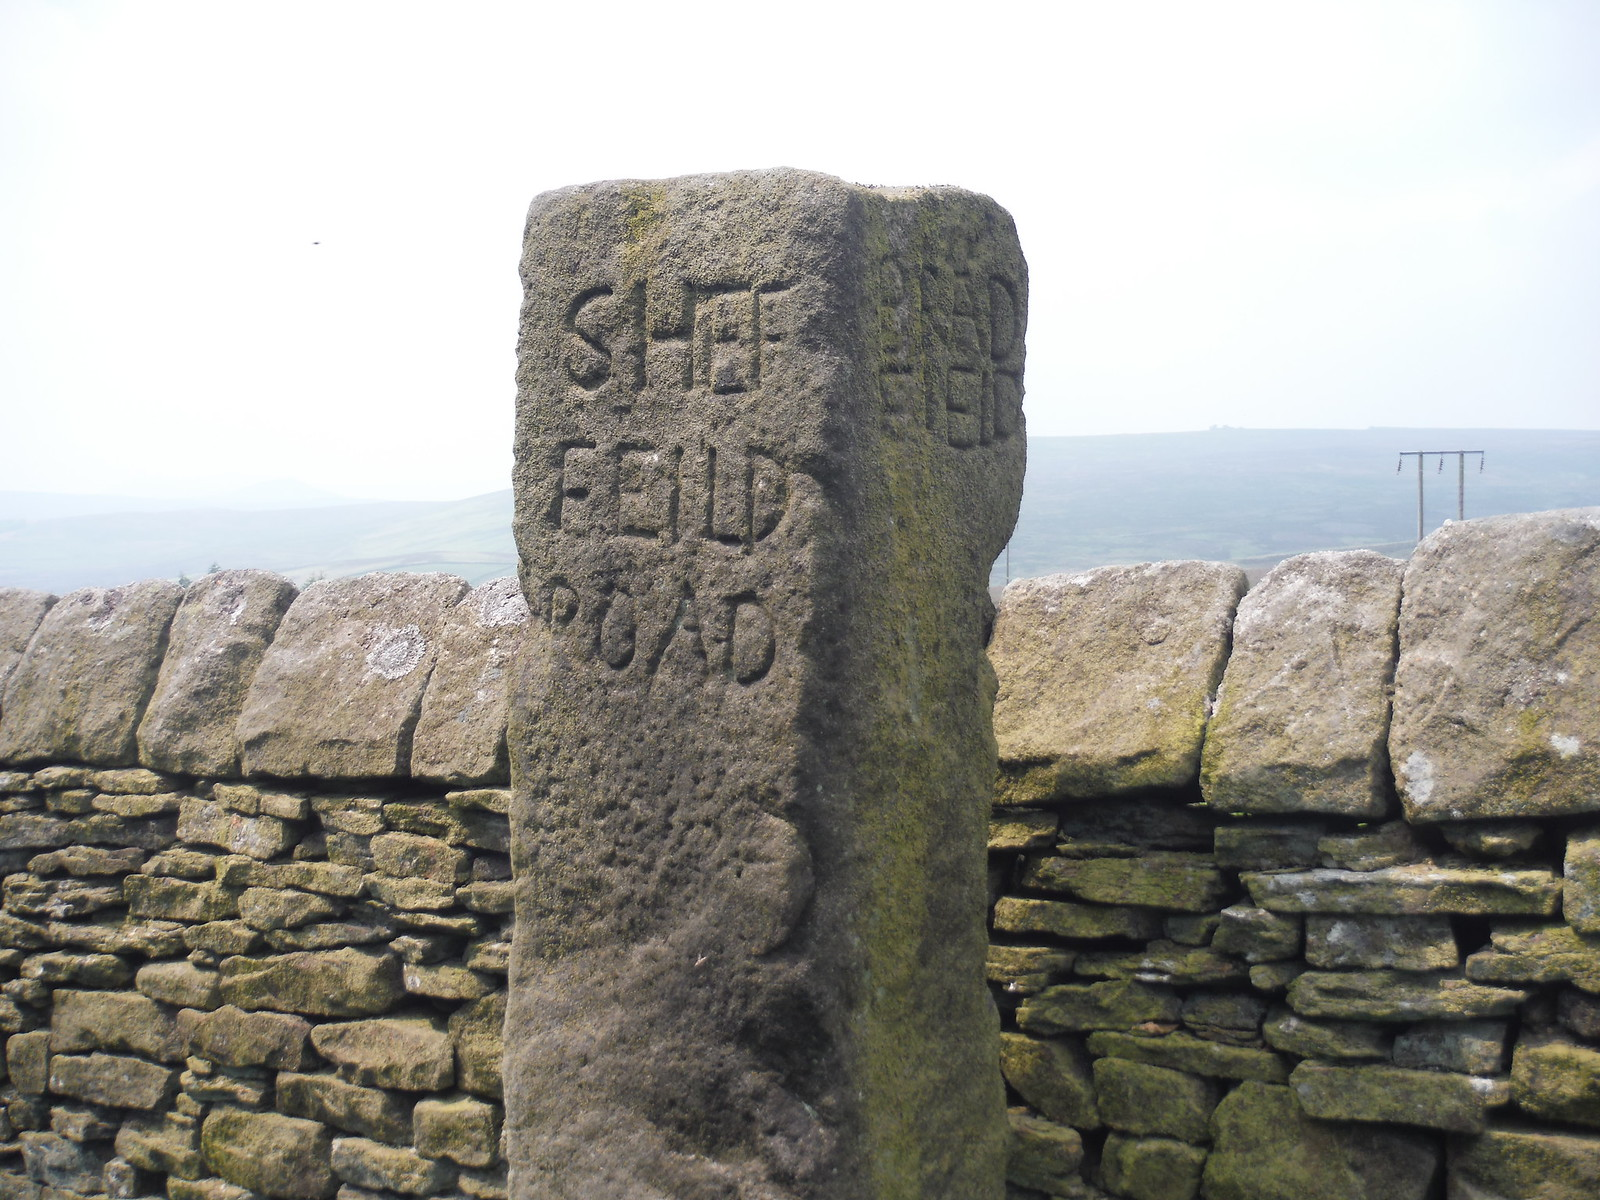 Guide Post near Moscar Lodge SWC Walk 266 - Sheffield to Bamford (via Burbage Rocks and Stanage Edge) or to Moscar Lodge [Extension to Ladybower Inn]